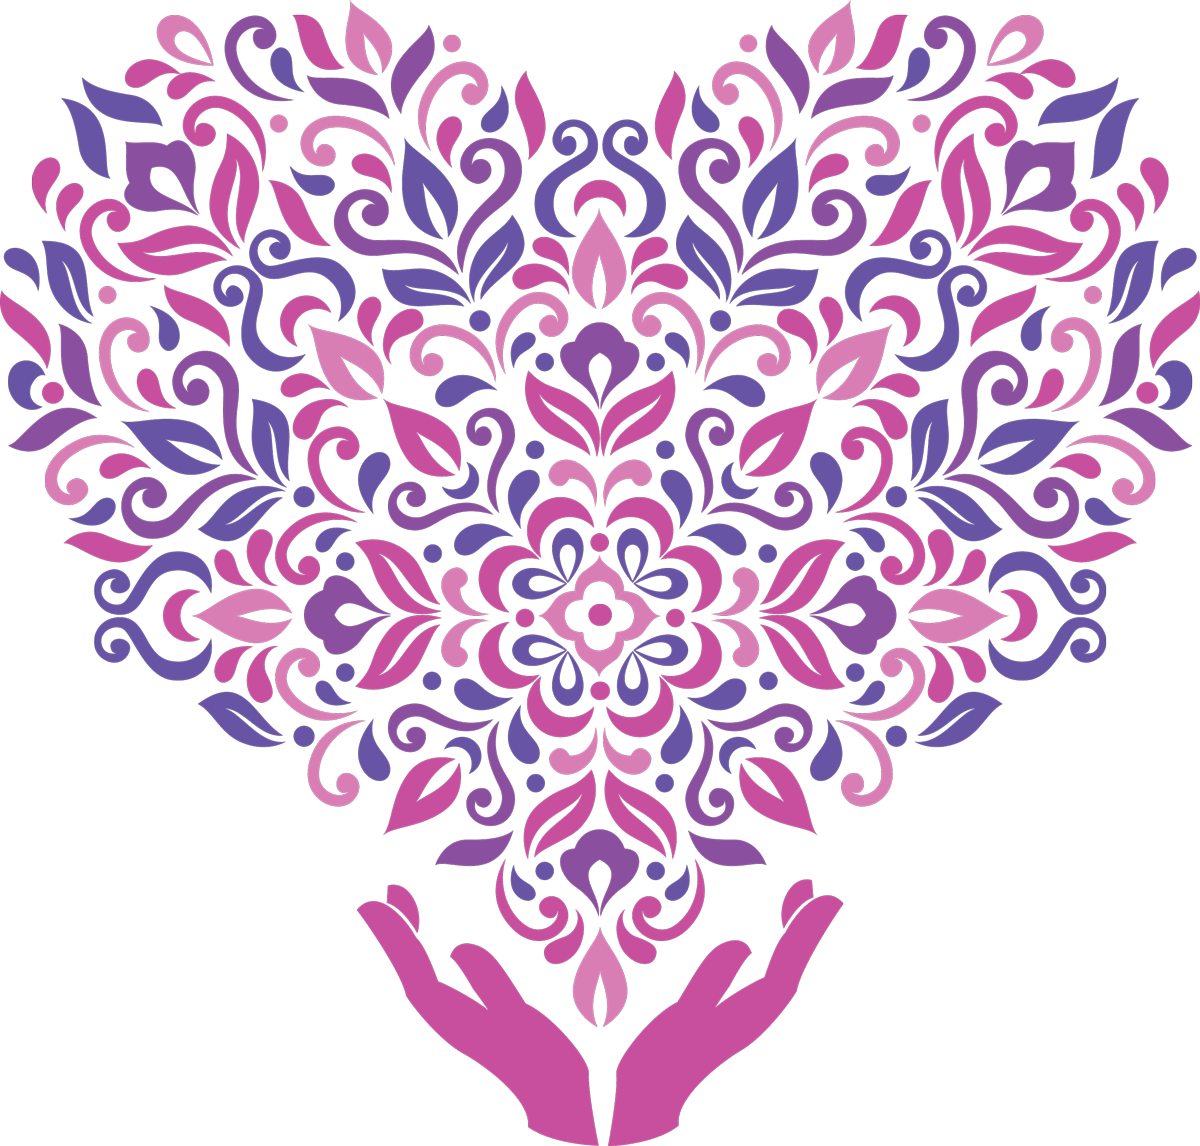 Blooming-Flower-Heart—Pin